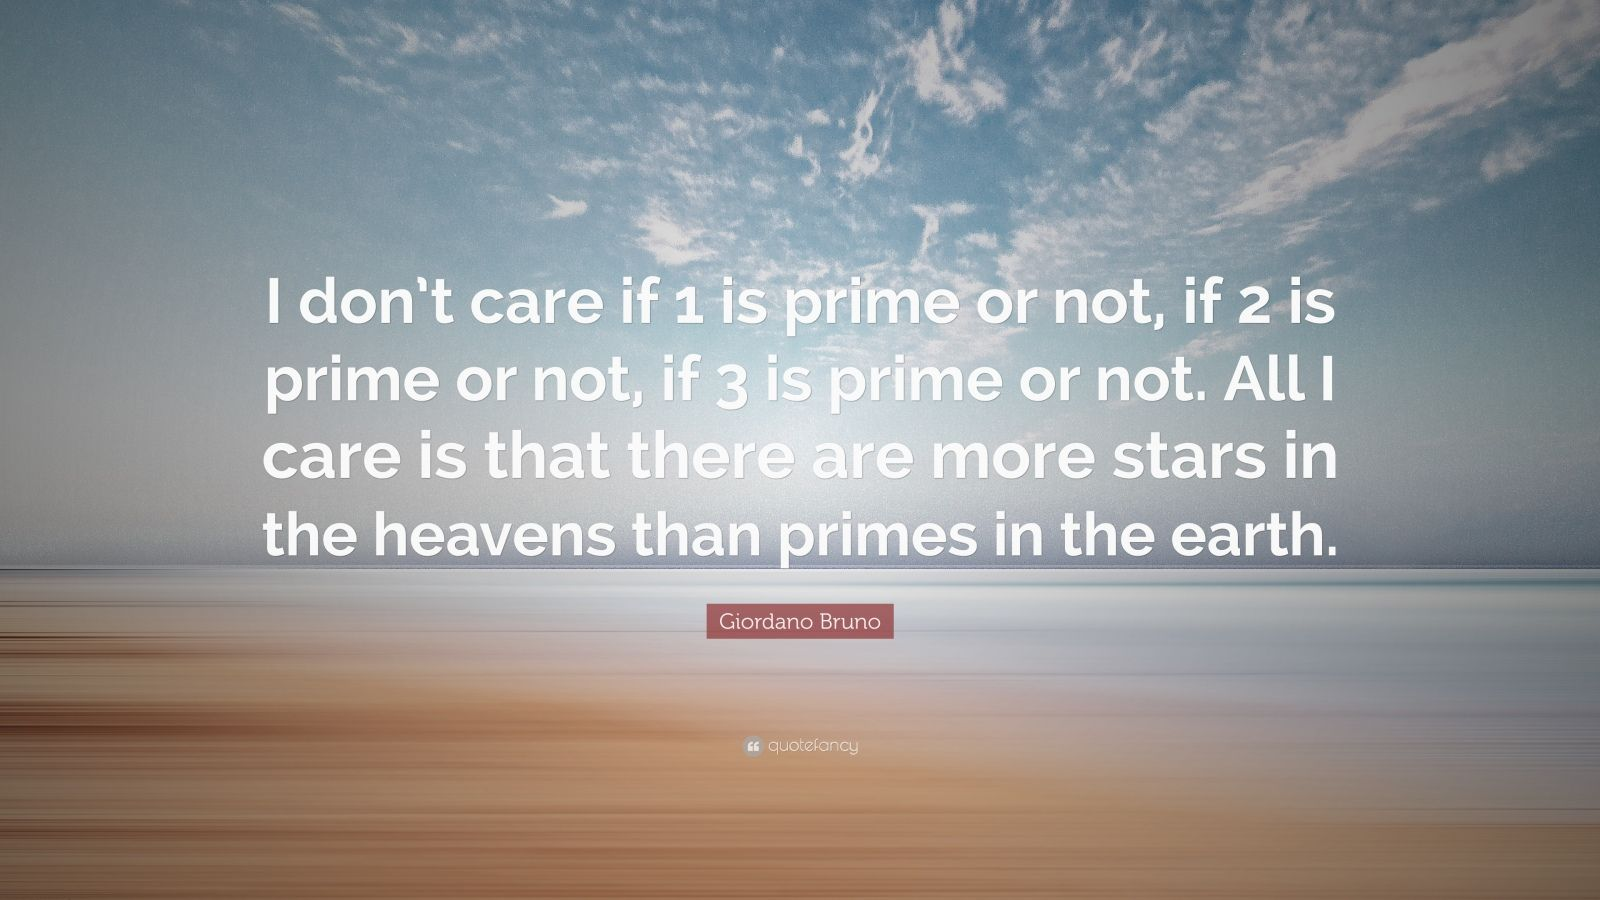 "Giordano Bruno Quote: ""I don't care if 1 is prime or not, if 2 is prime or not, if 3 is prime or not. All I care is that there are more stars in the heavens than primes in the earth."""